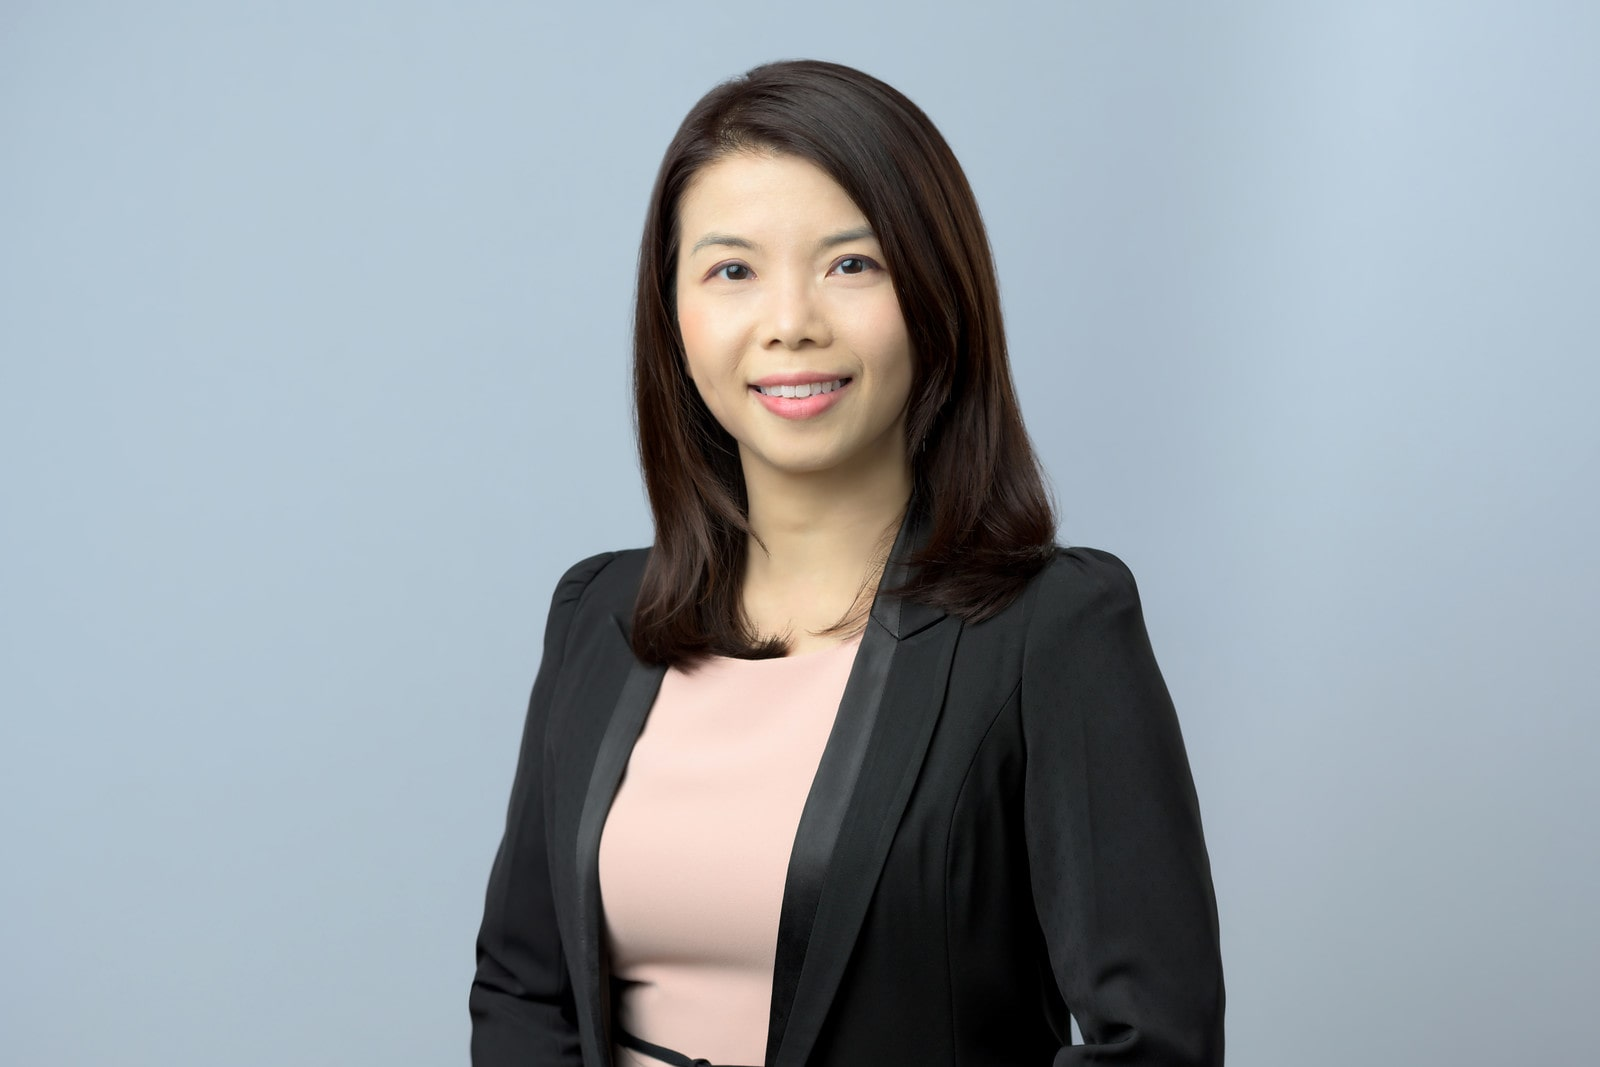 LAW Mei Yan, Clara profile image